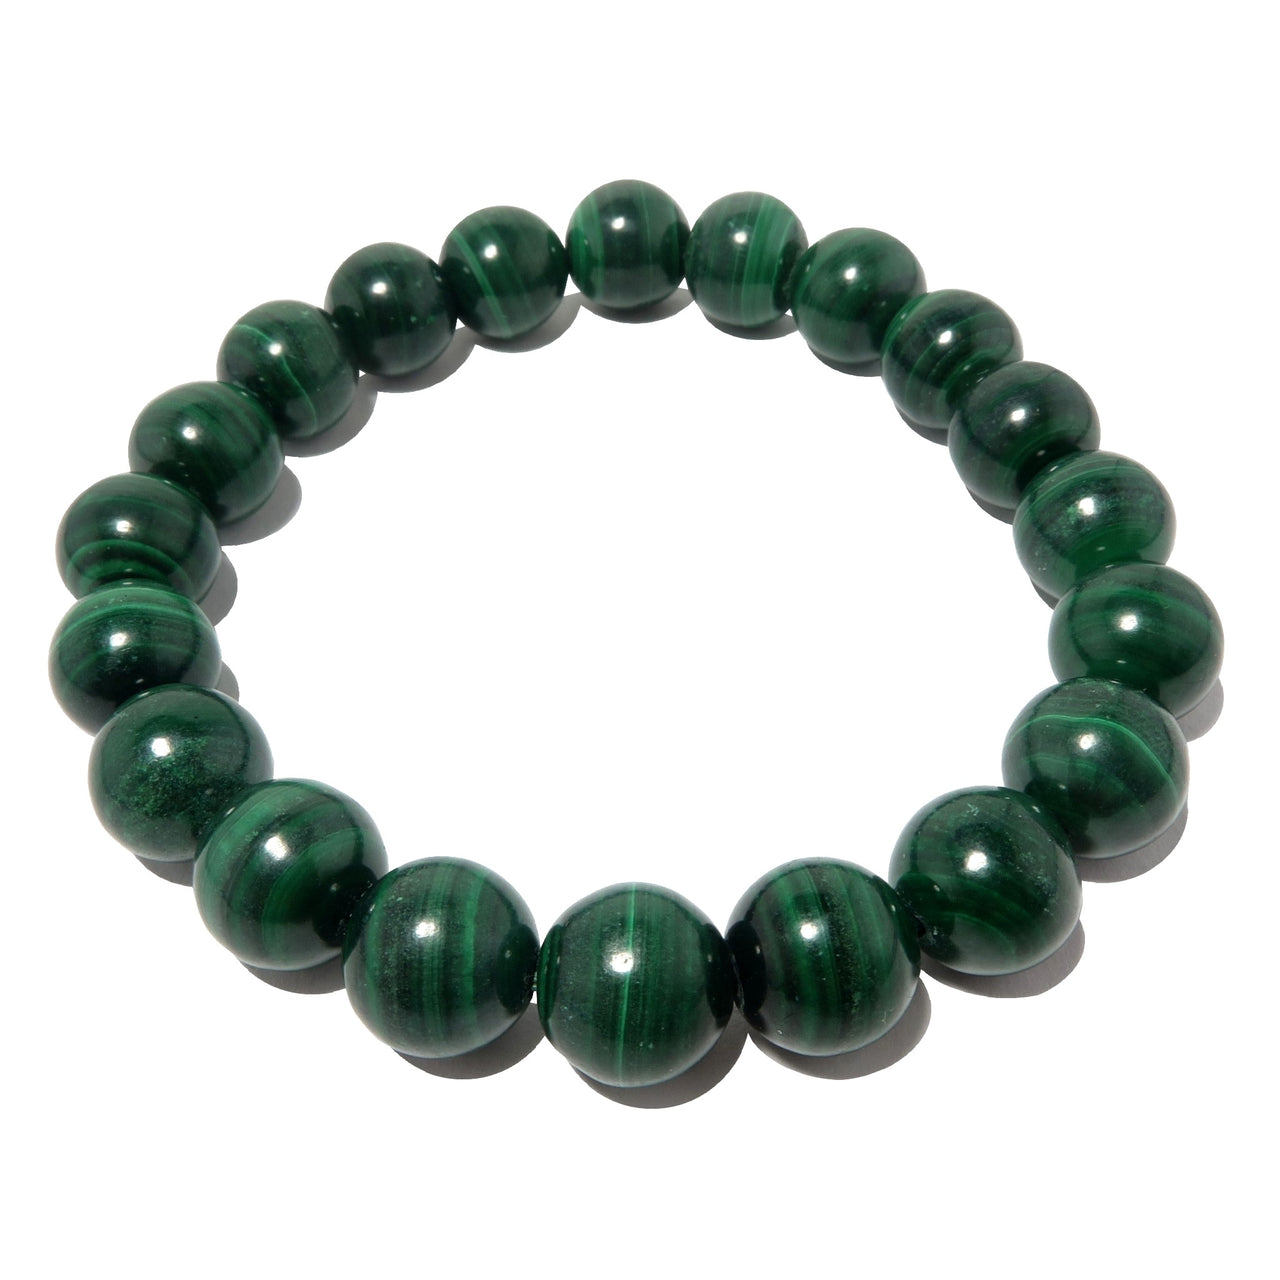 Malachite Bracelet 9mm Dark Green Round Gemstone Nature Lovers Stone Stretch Jewelry B02